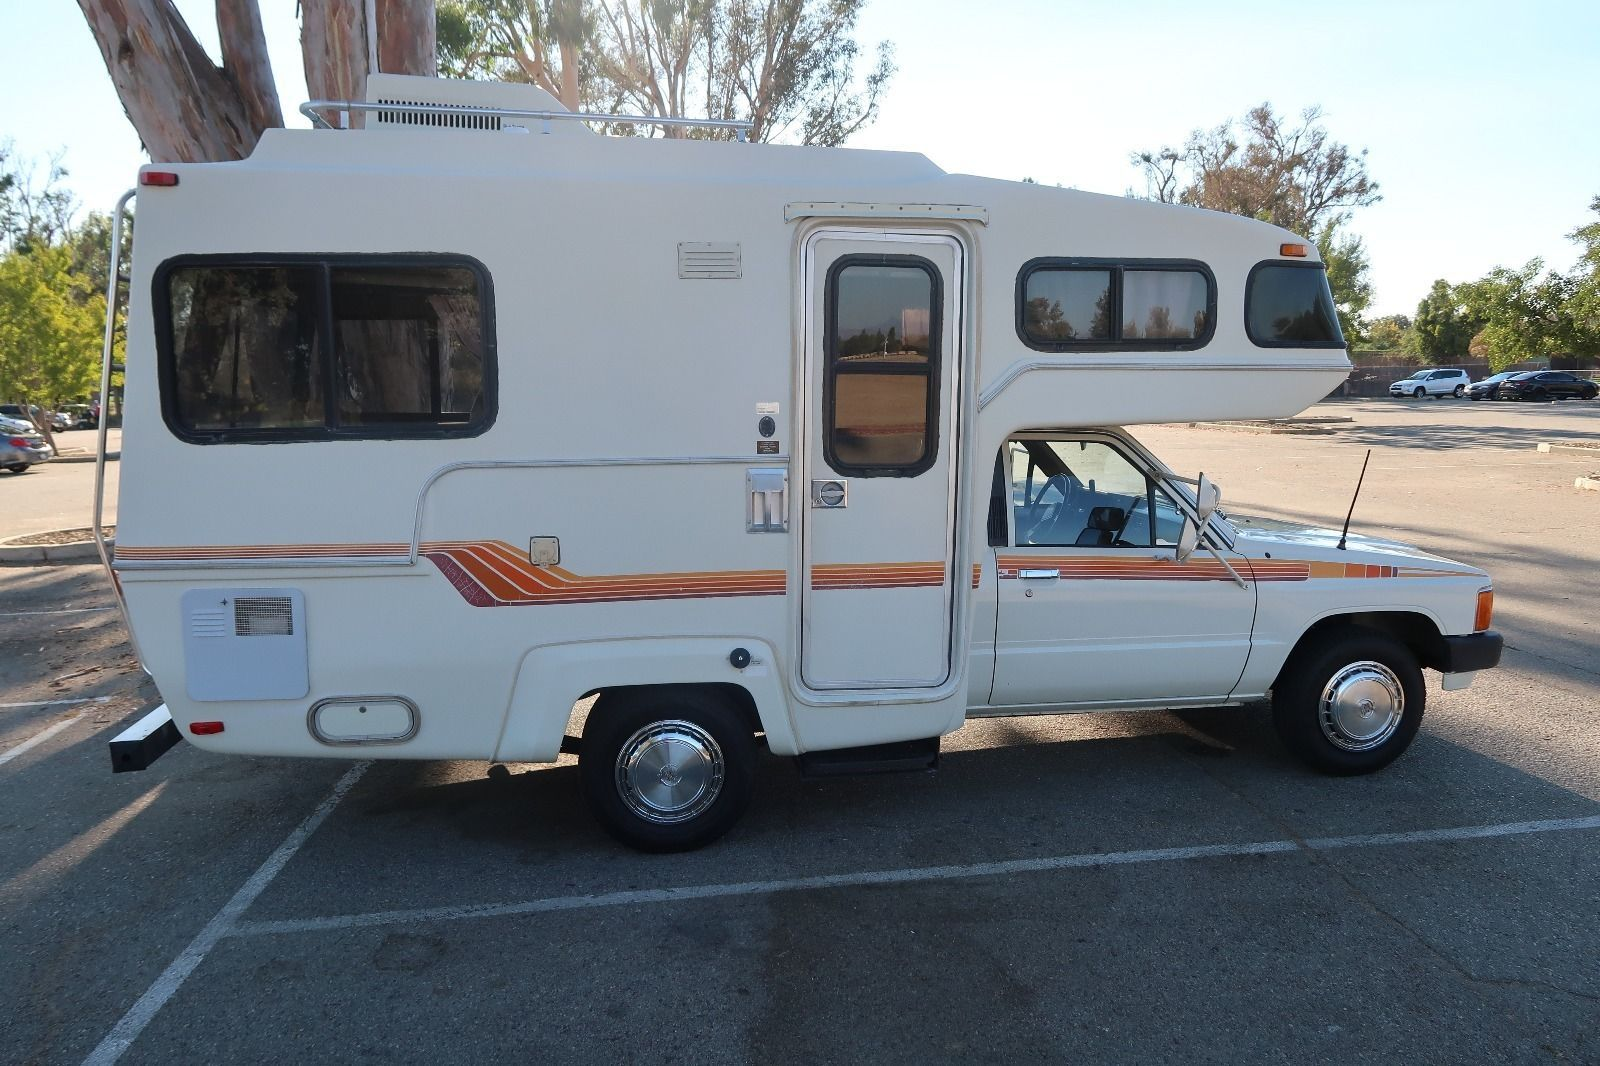 Pin By Greg Beddor On 3 Toyota Rv S Rv Recreational Vehicles Toyota Dolphin